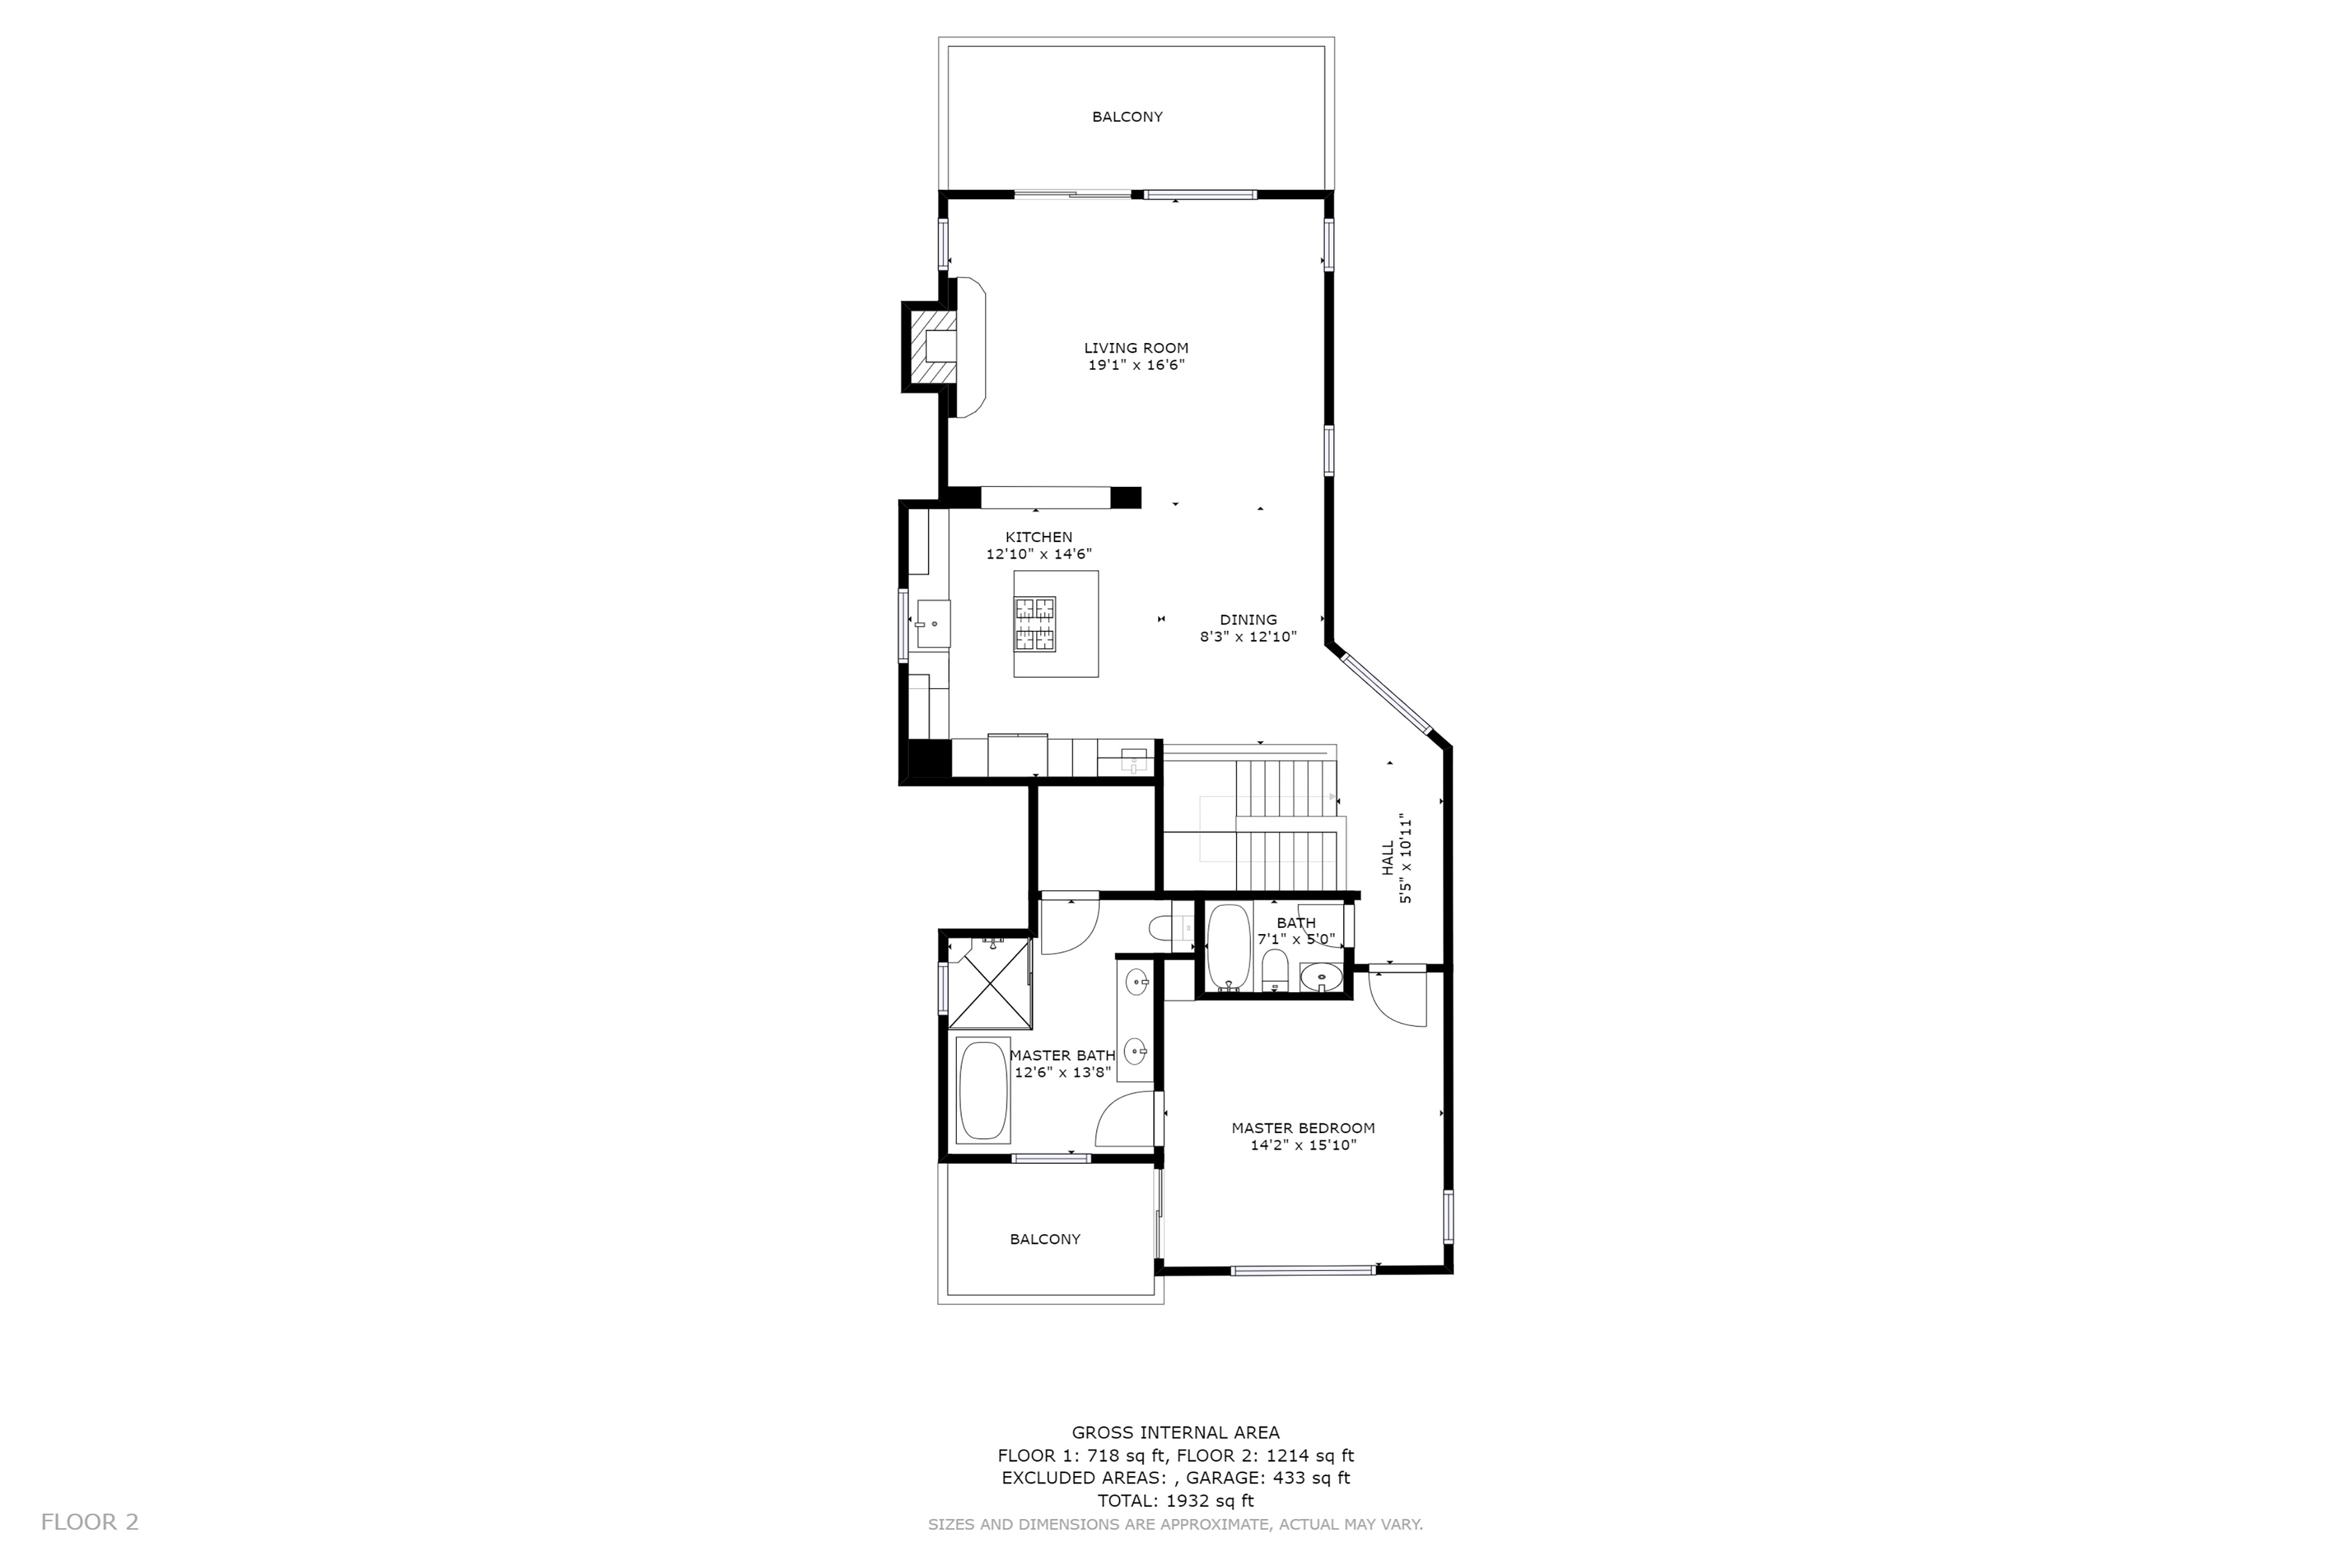 Single Family Homes for Active at Completely Remodeled In 2014 490 Carson Court South Lake Tahoe, California 96150 United States